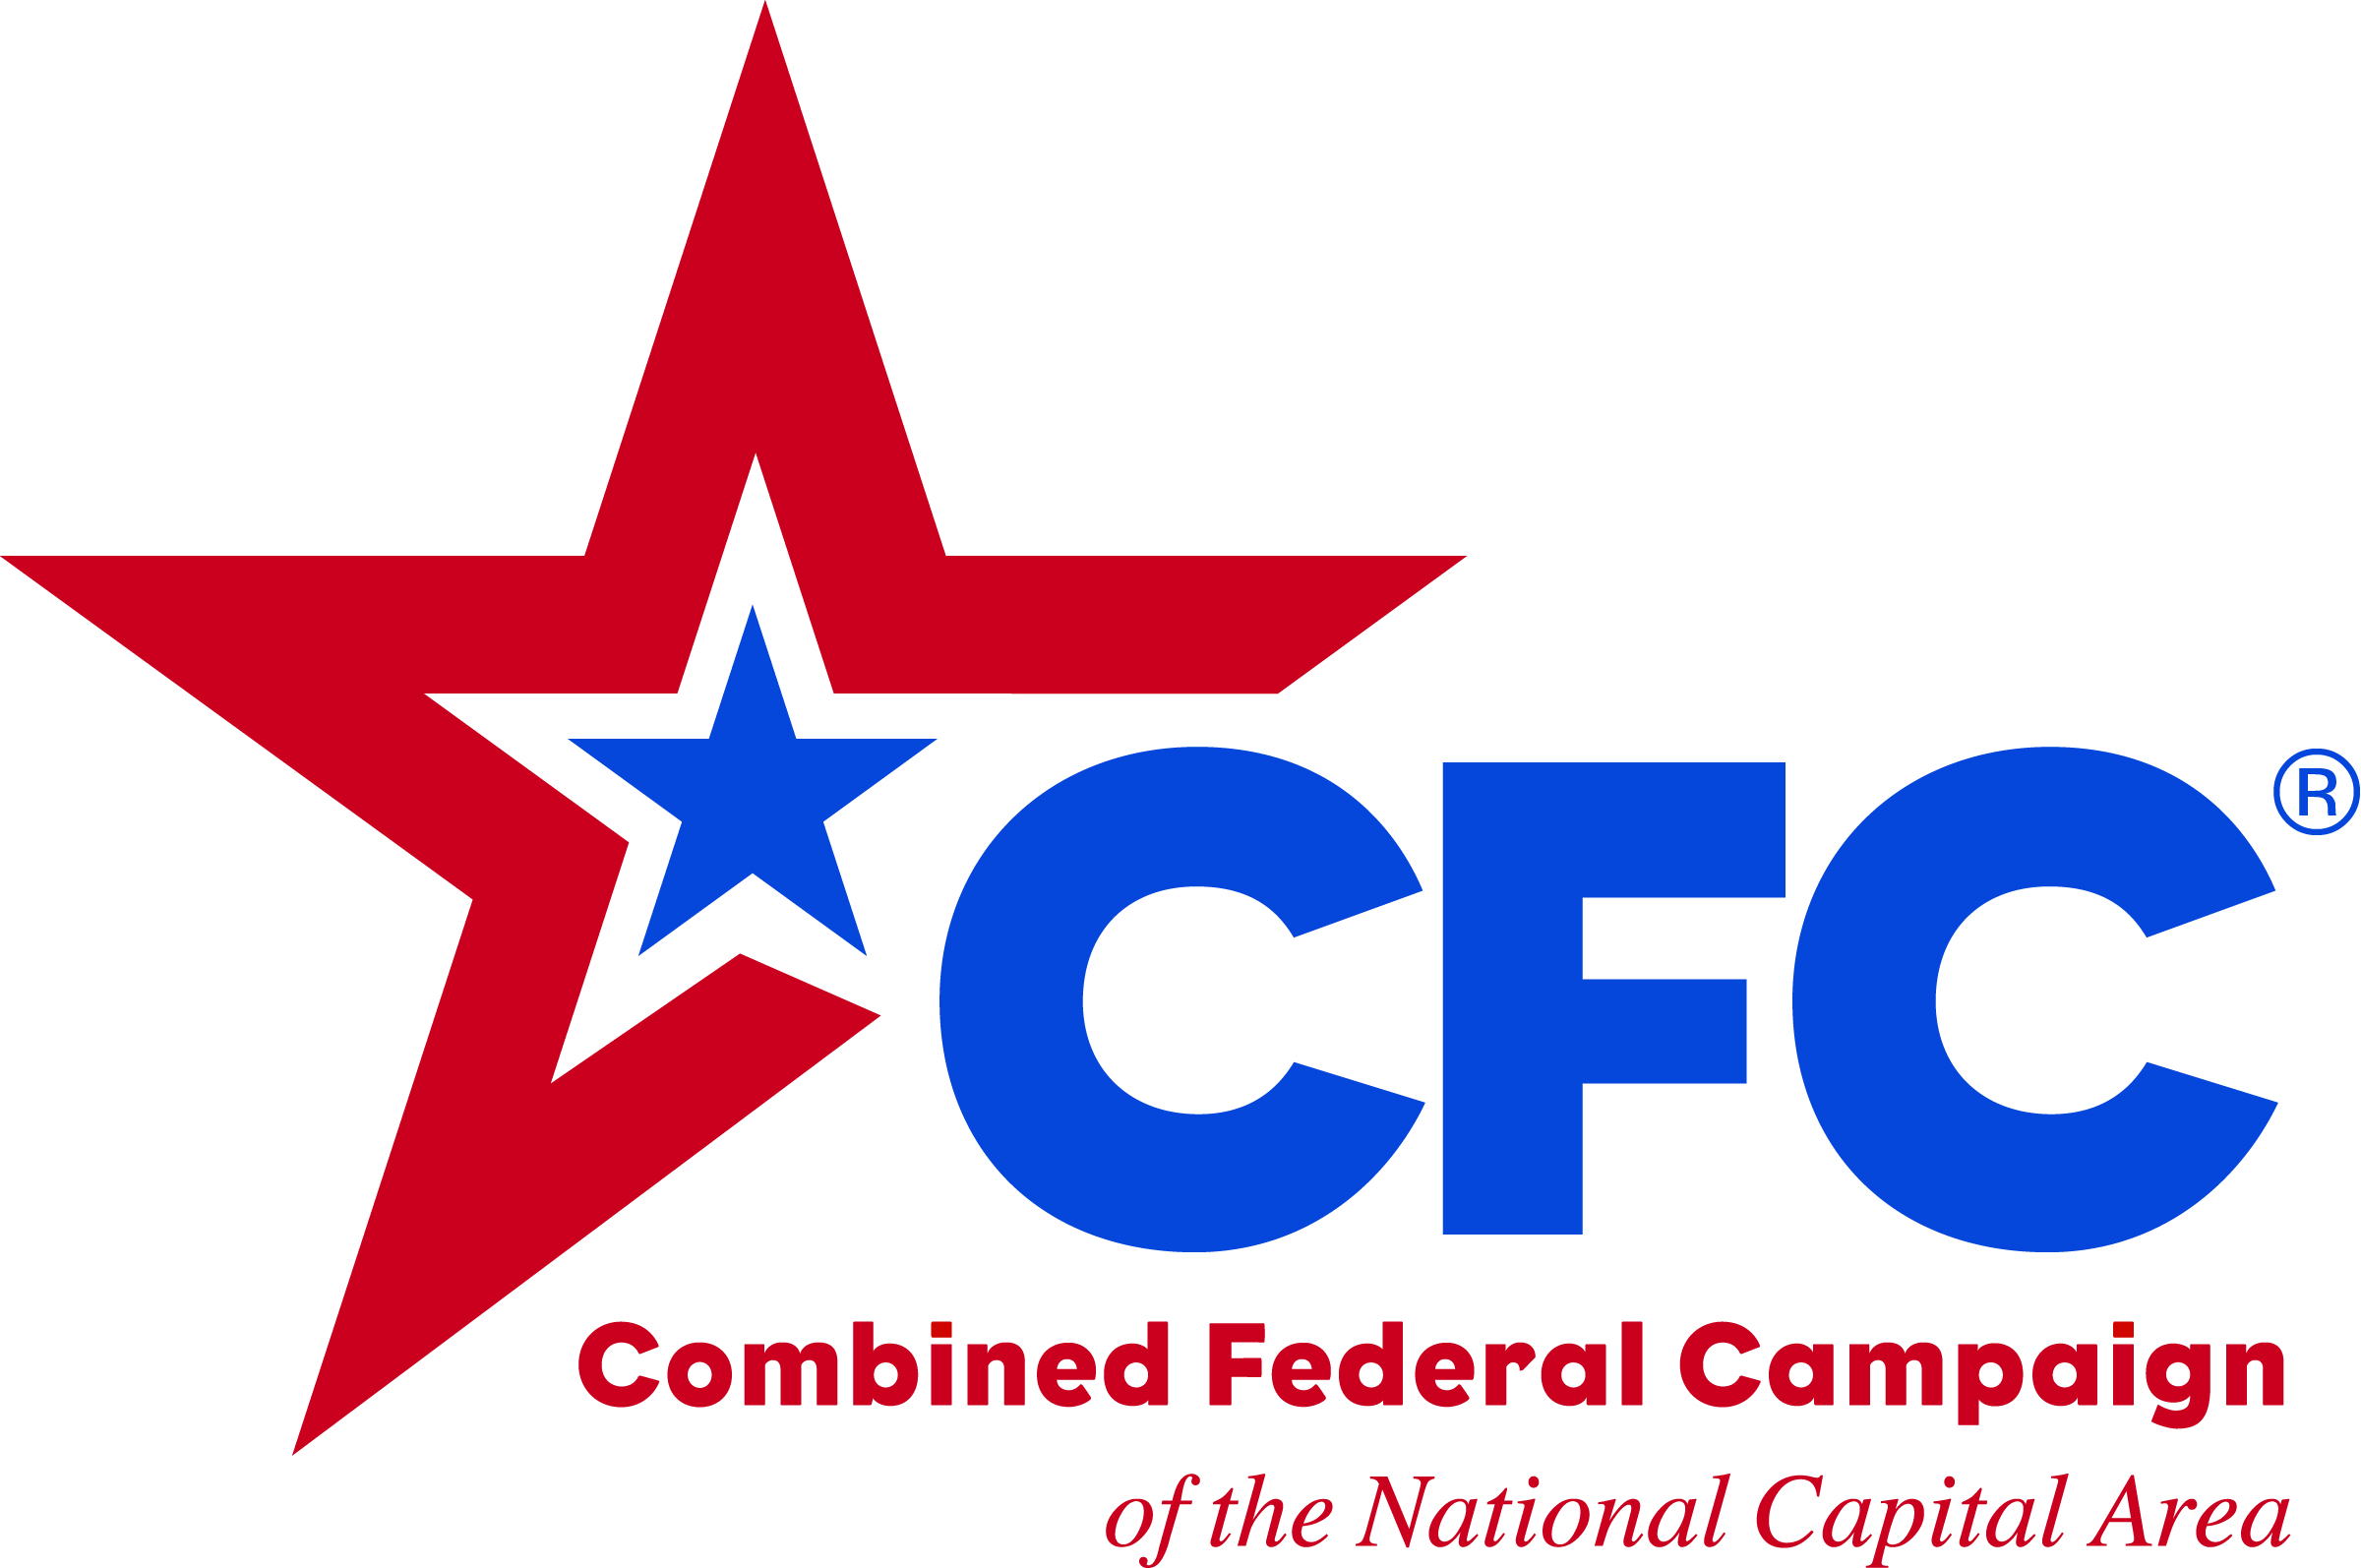 Group logo of Combined Federal Campaign of the National Capital Area